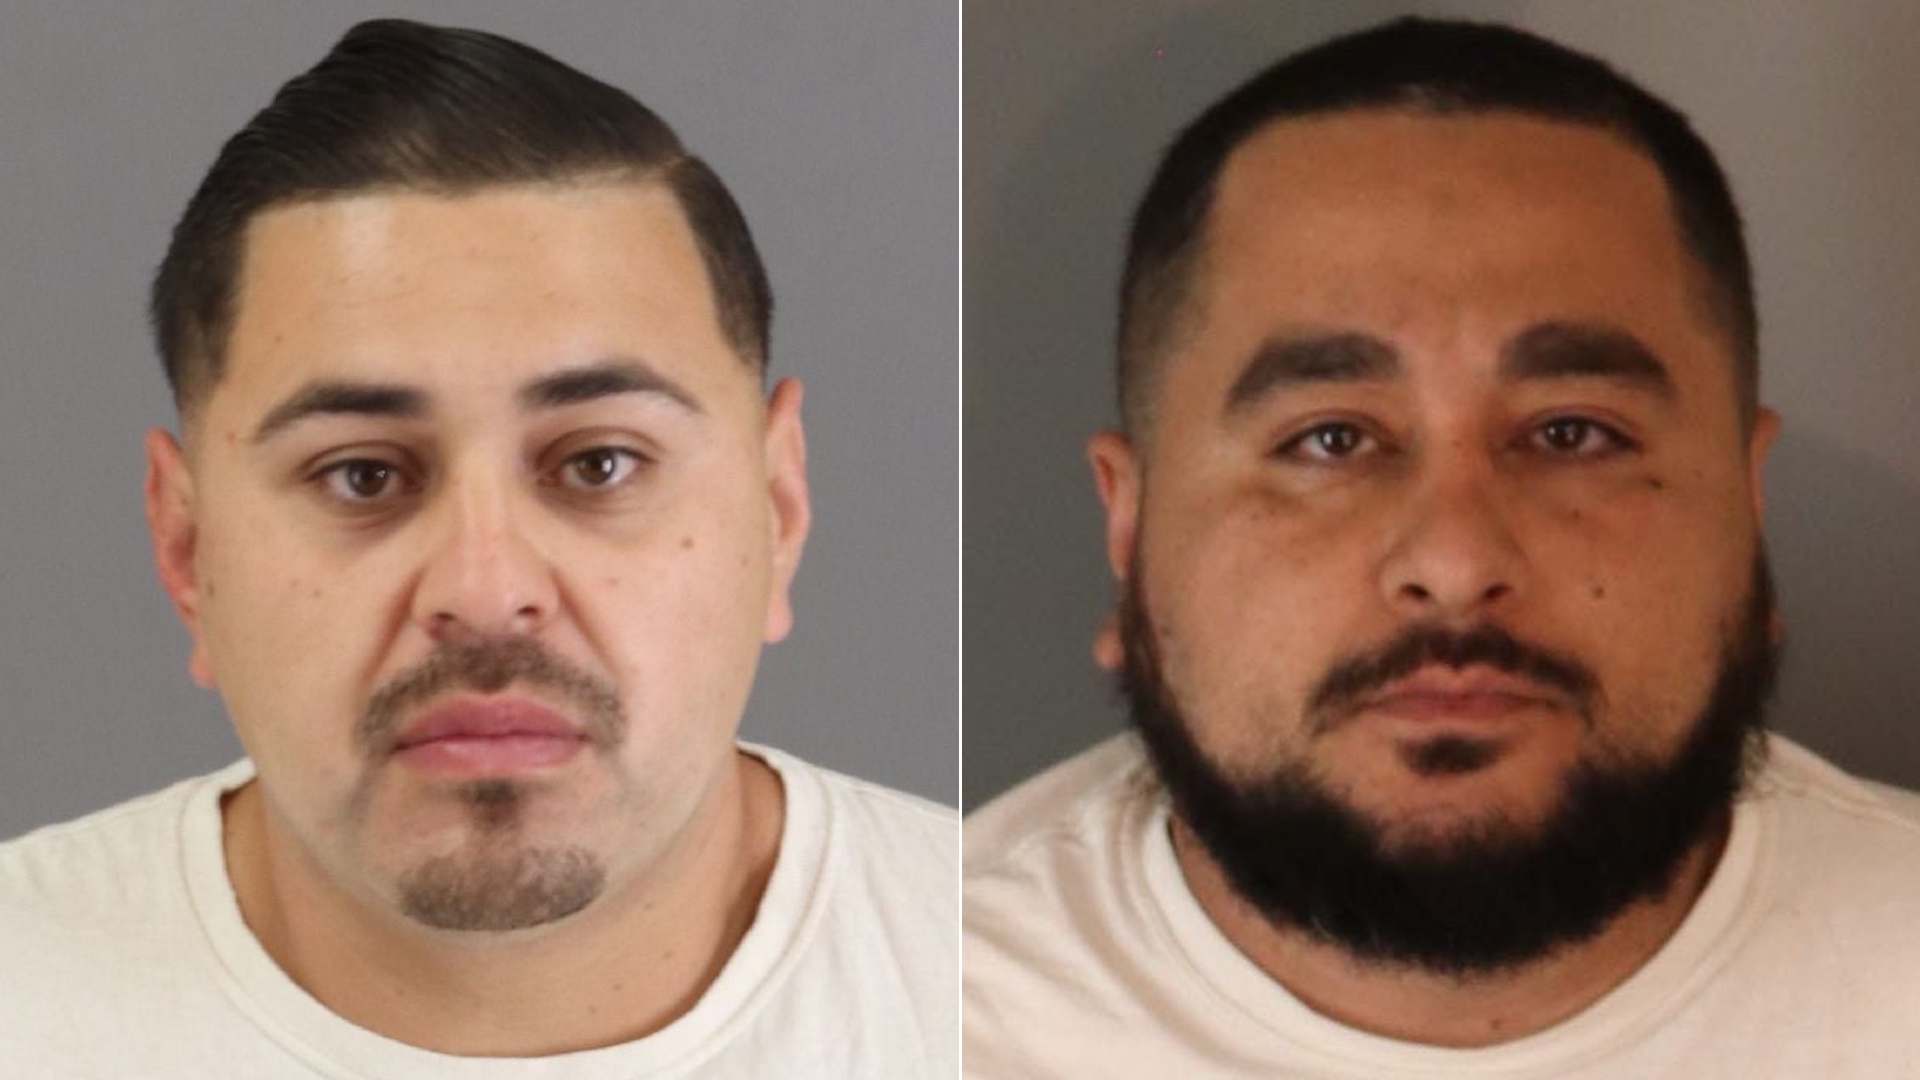 Joel Lopez, left, and Edward Padilla Jr. are seen in booking photos released June 18, 2021, by the Riverside County District Attorney's Office.